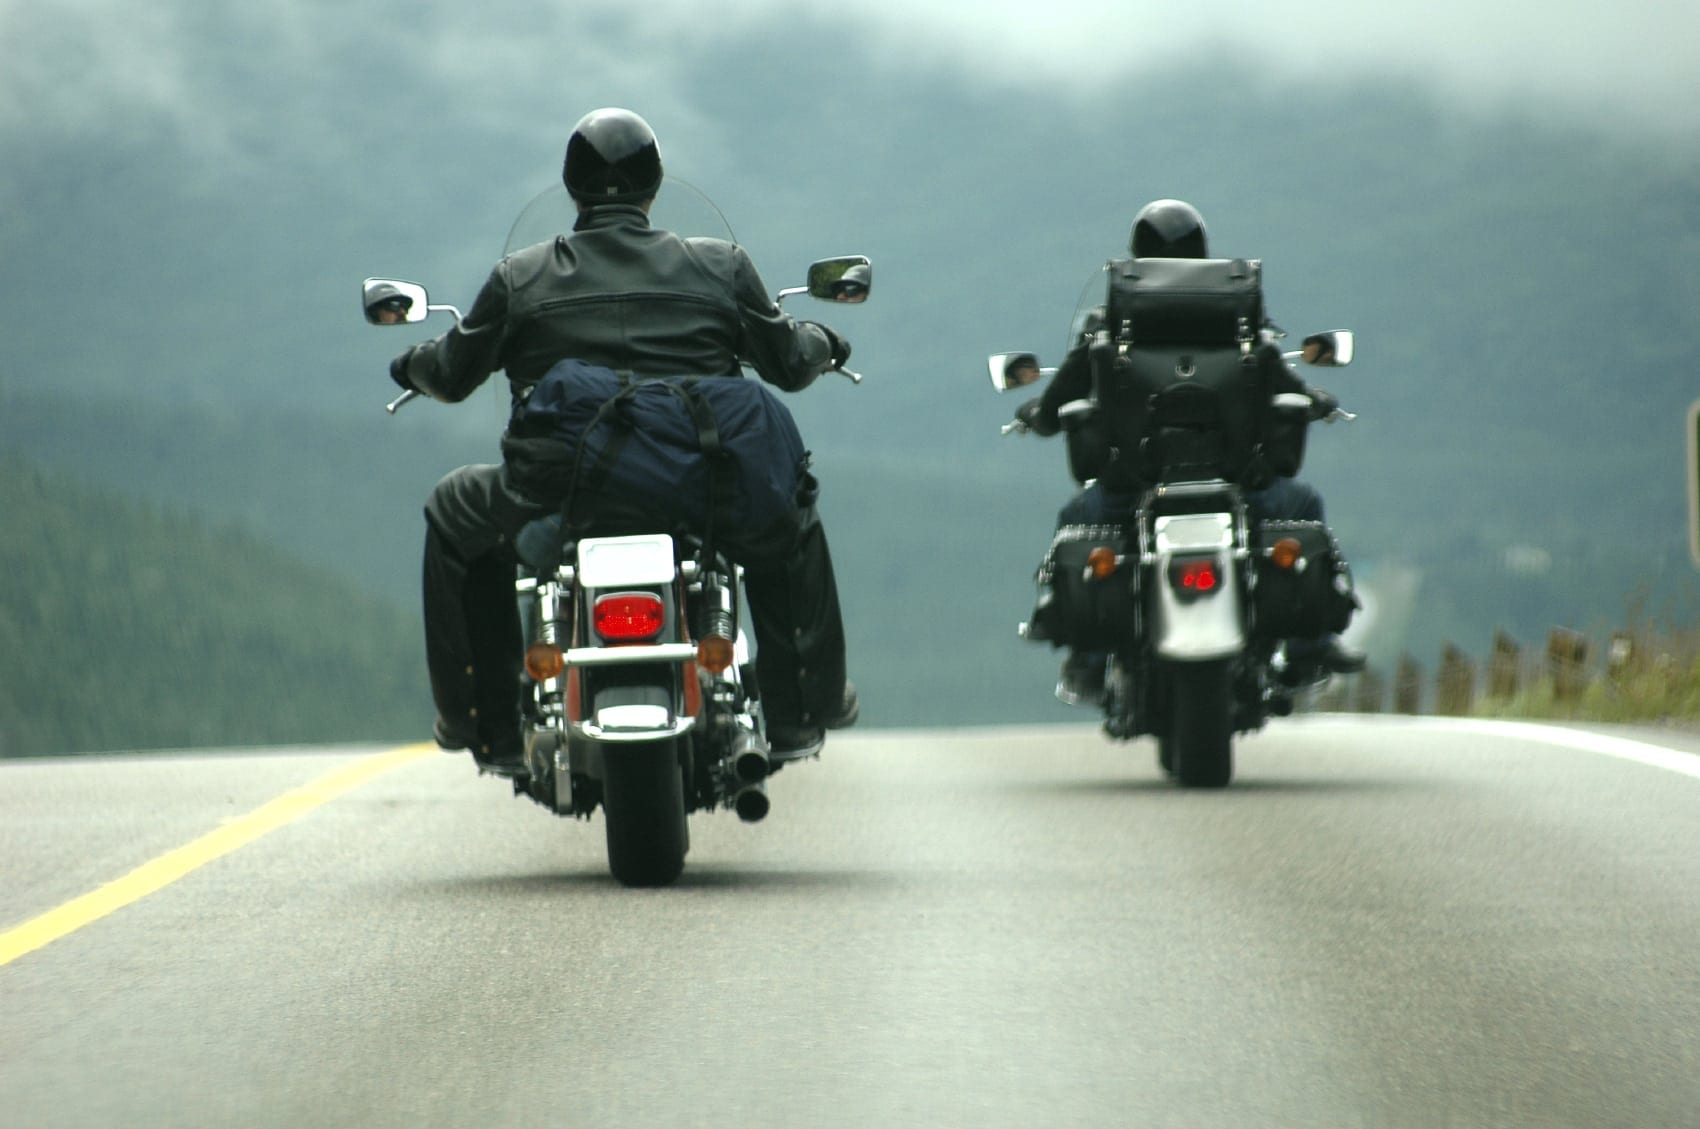 Motorcyclists Riding On A Rural Highway Stock Photo